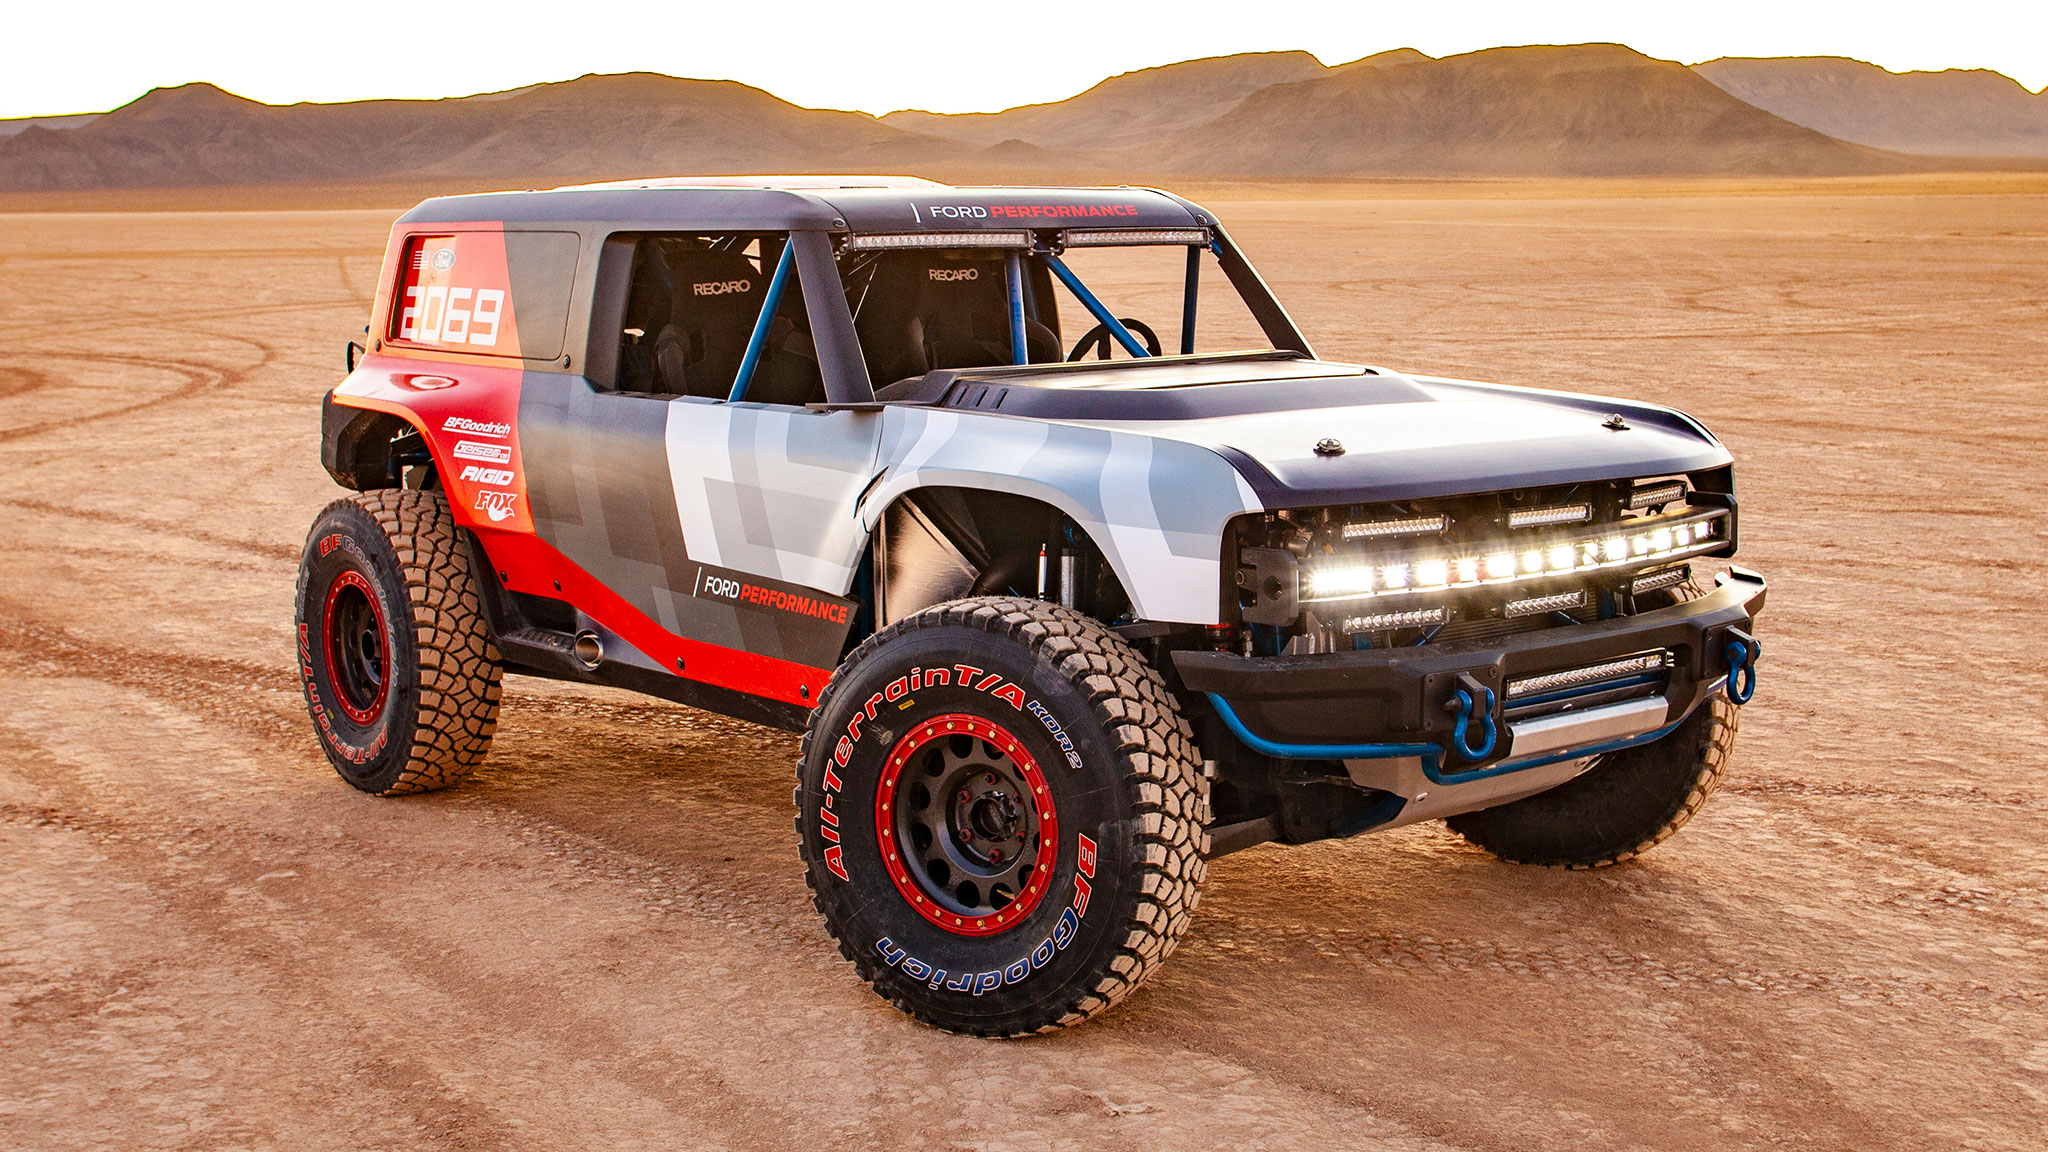 the 2021 ford bronco details previewedthe race truck